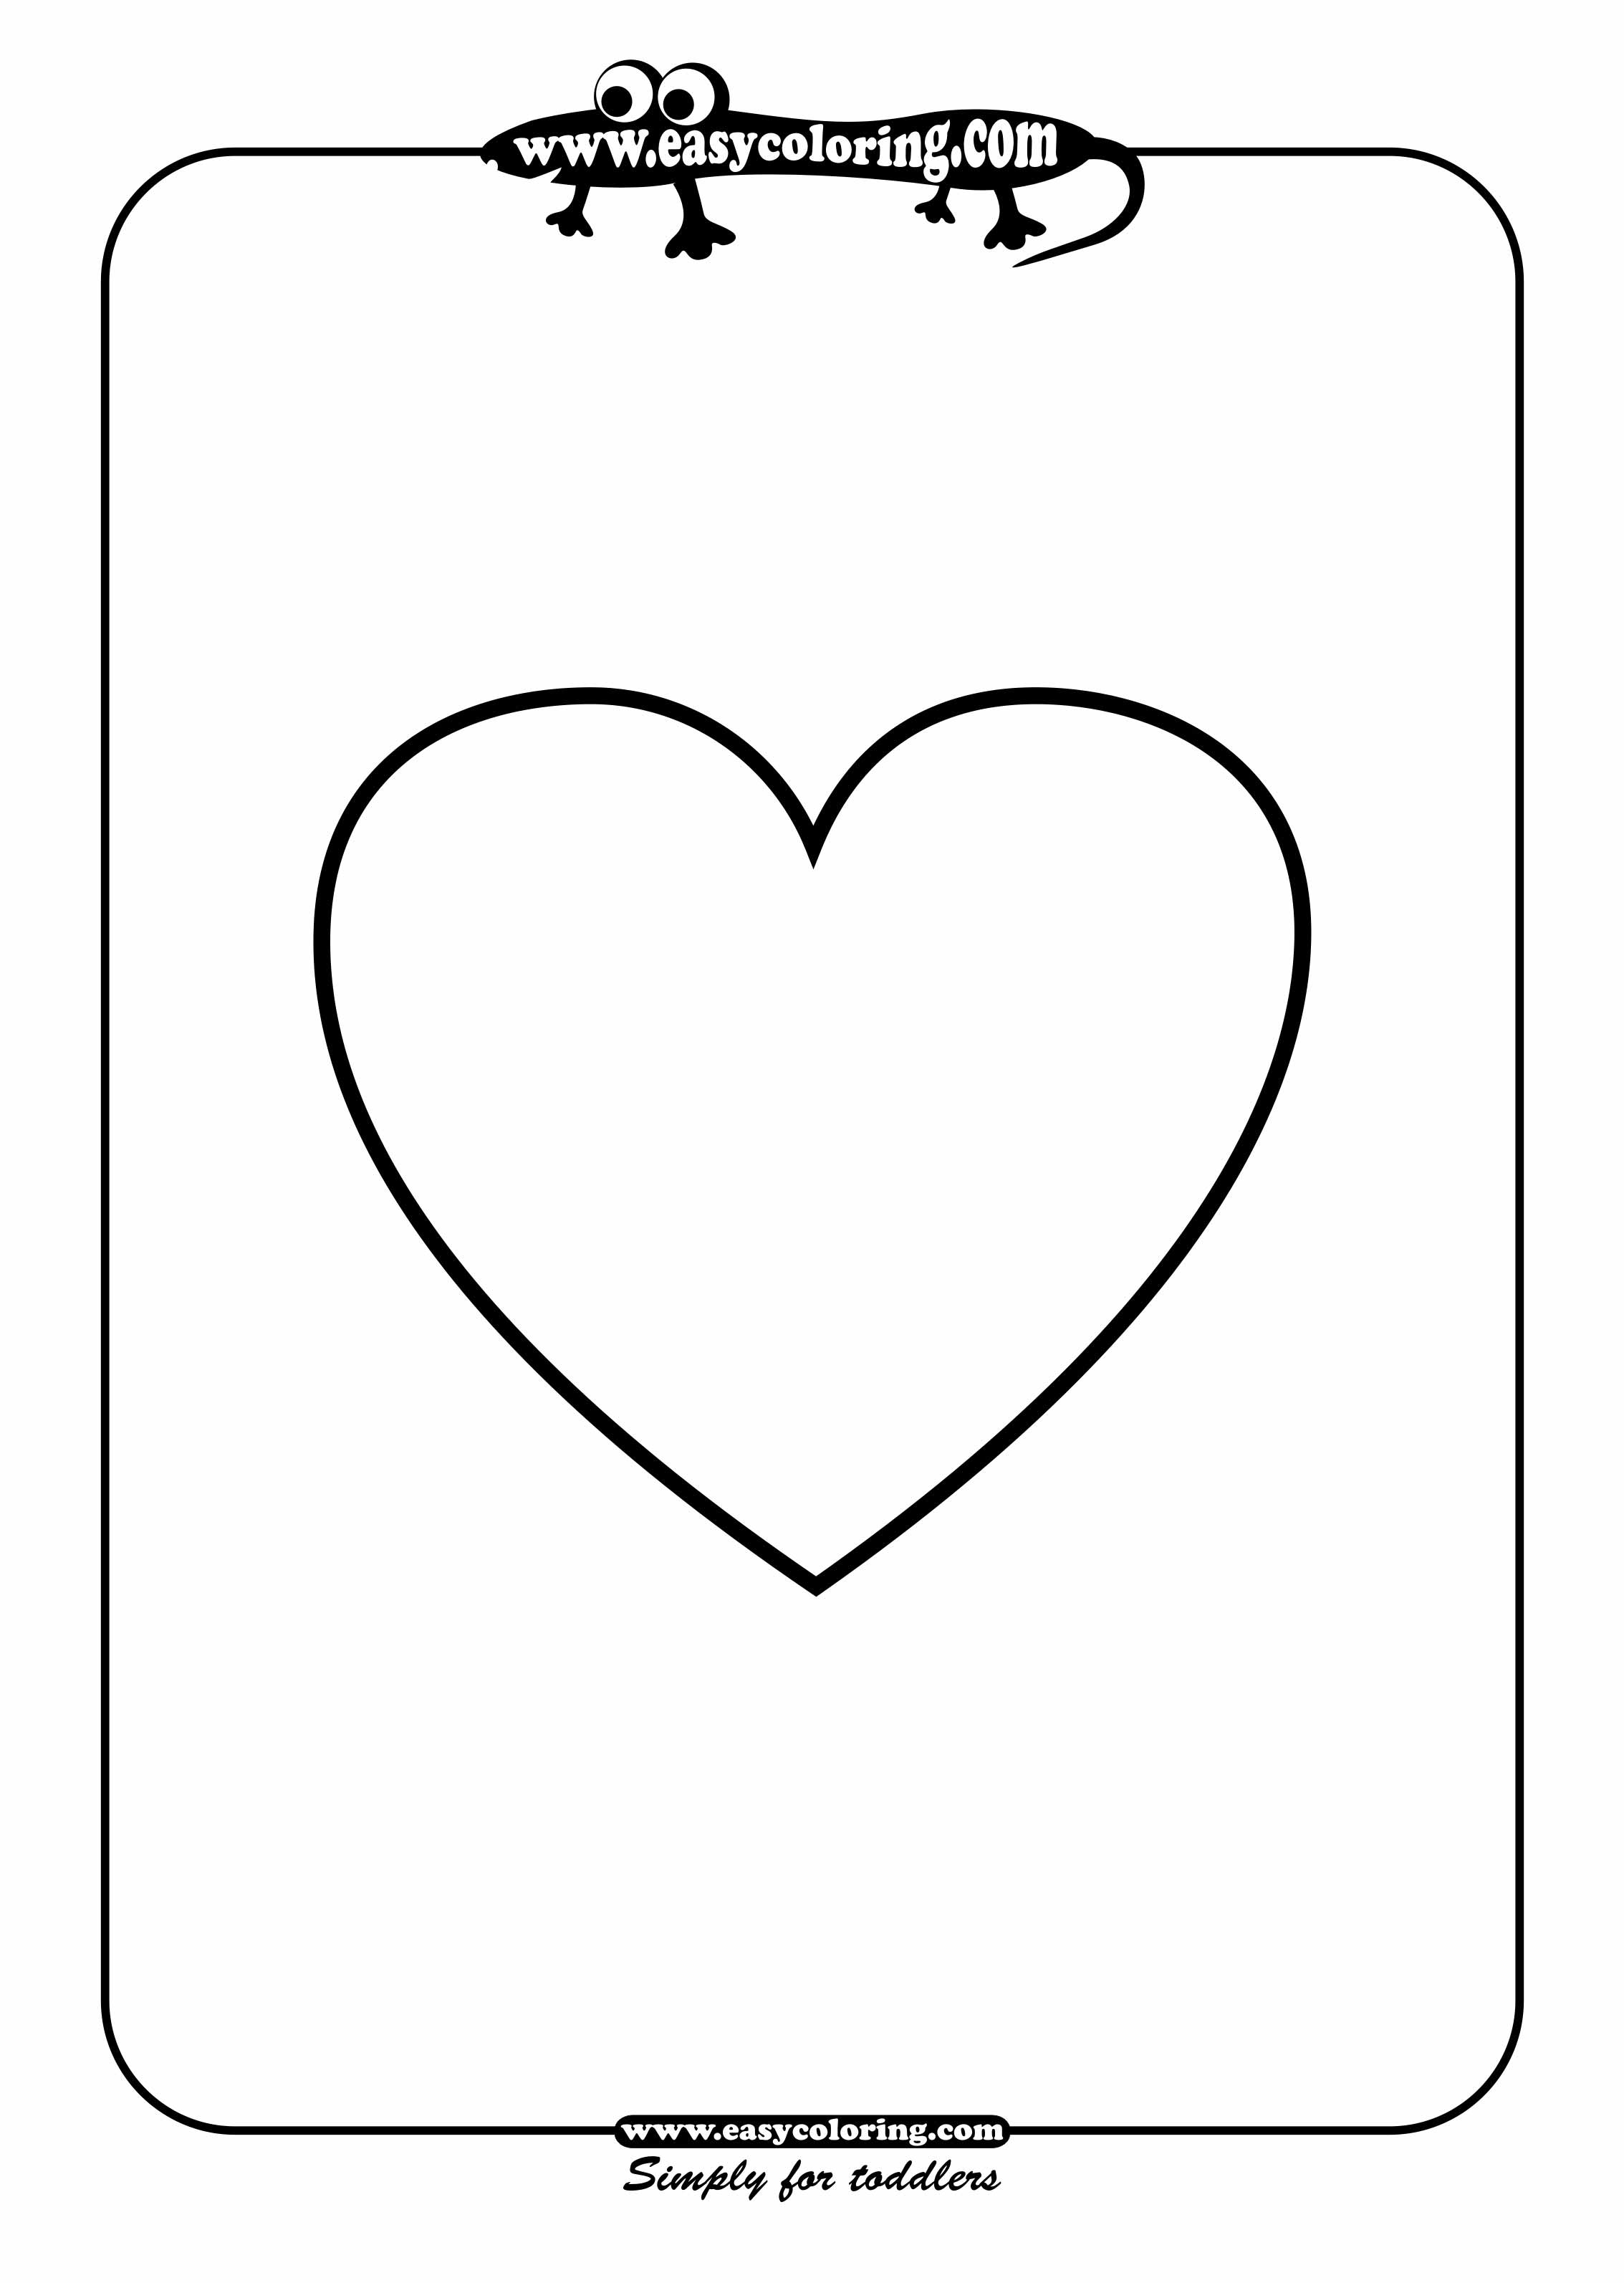 heart shaped coloring pages. Heart  Easy coloring shapes Simple pages for toddlers